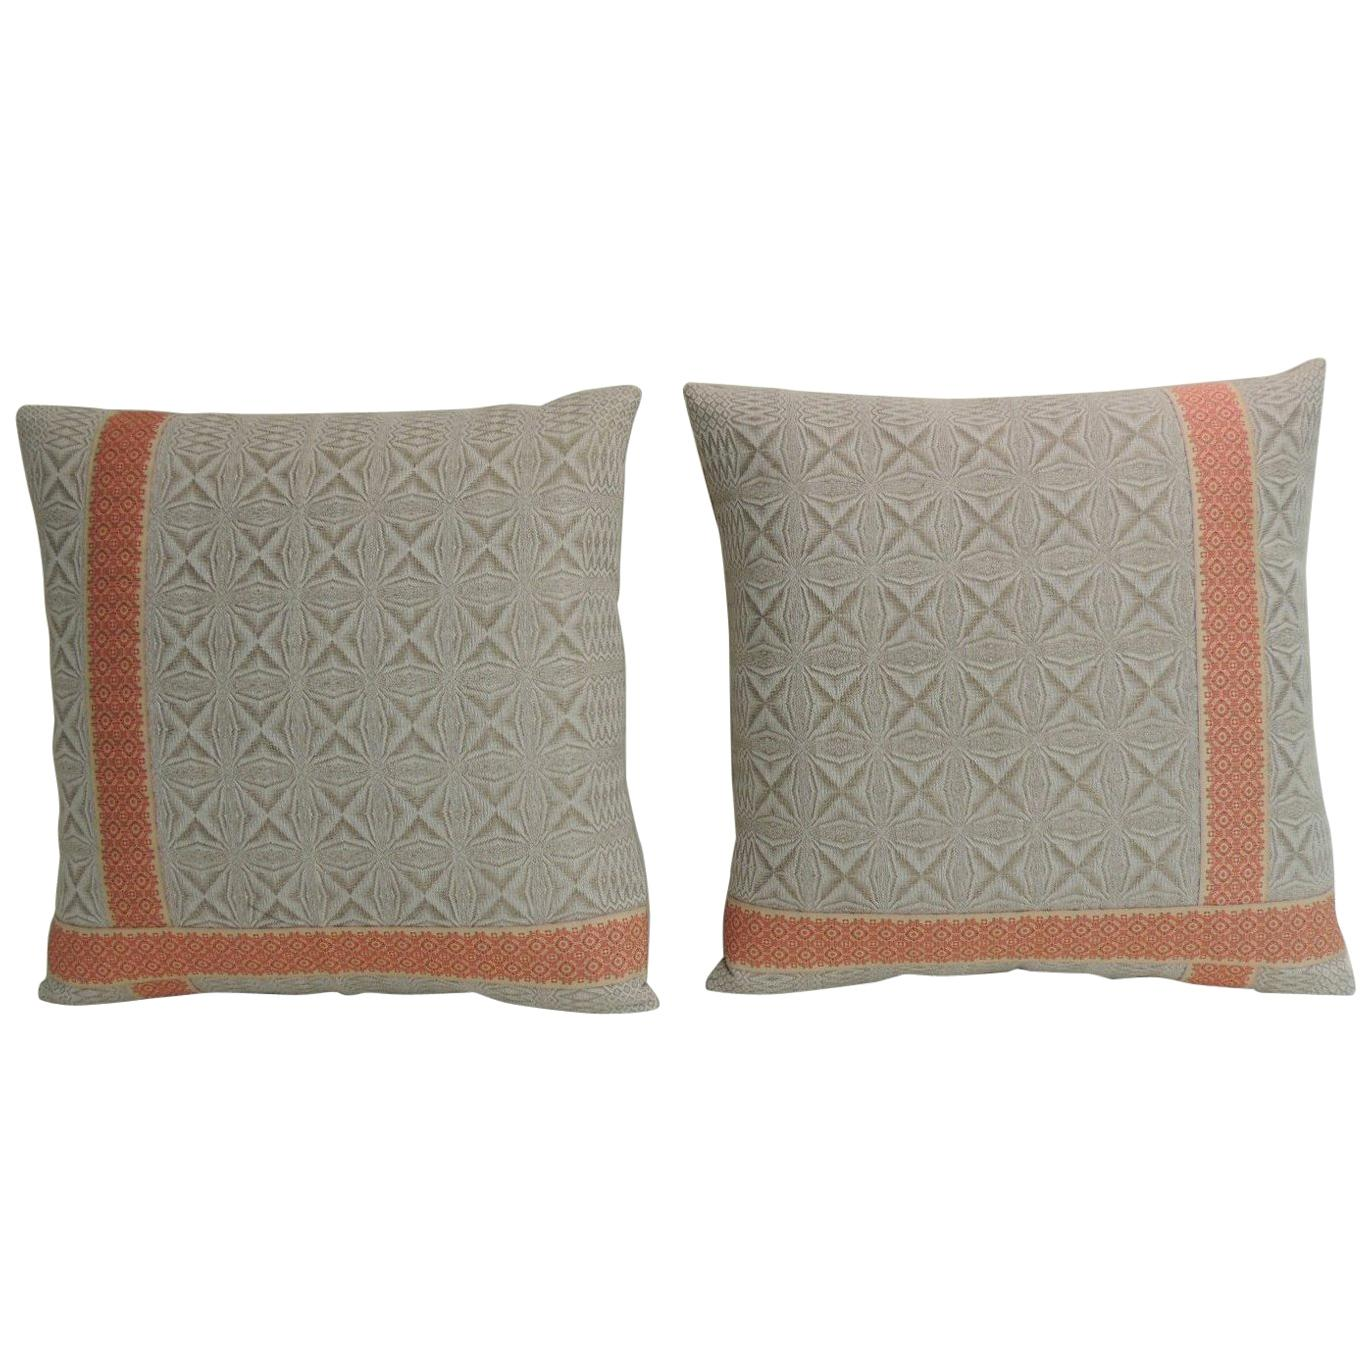 Pair of Vintage Woven Swedish Decorative Pillows with Ribbon Accents